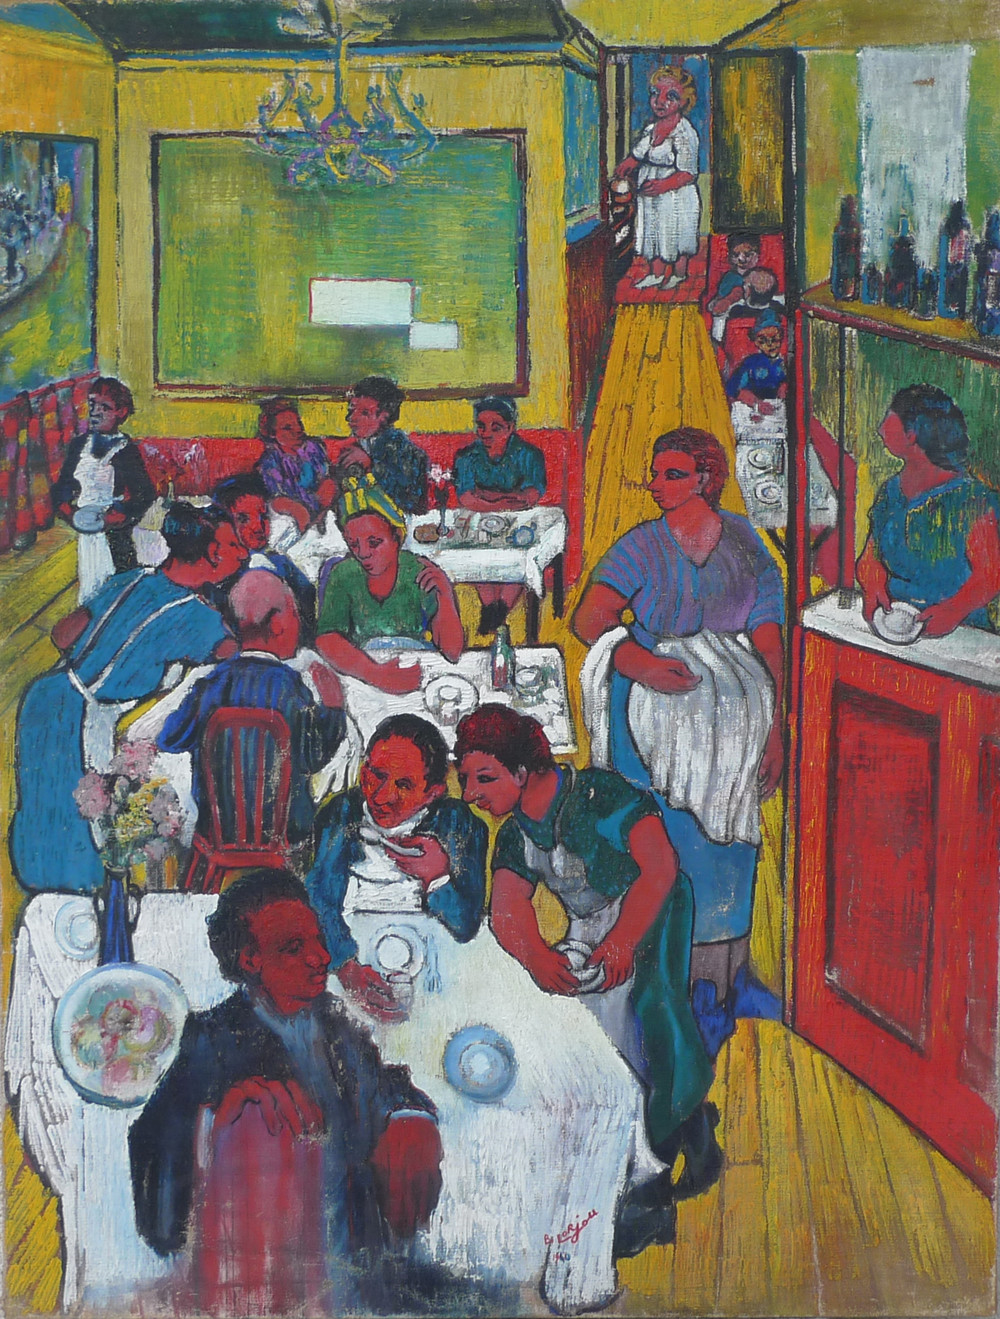 The Restaurant (La Brasserie) (1940)